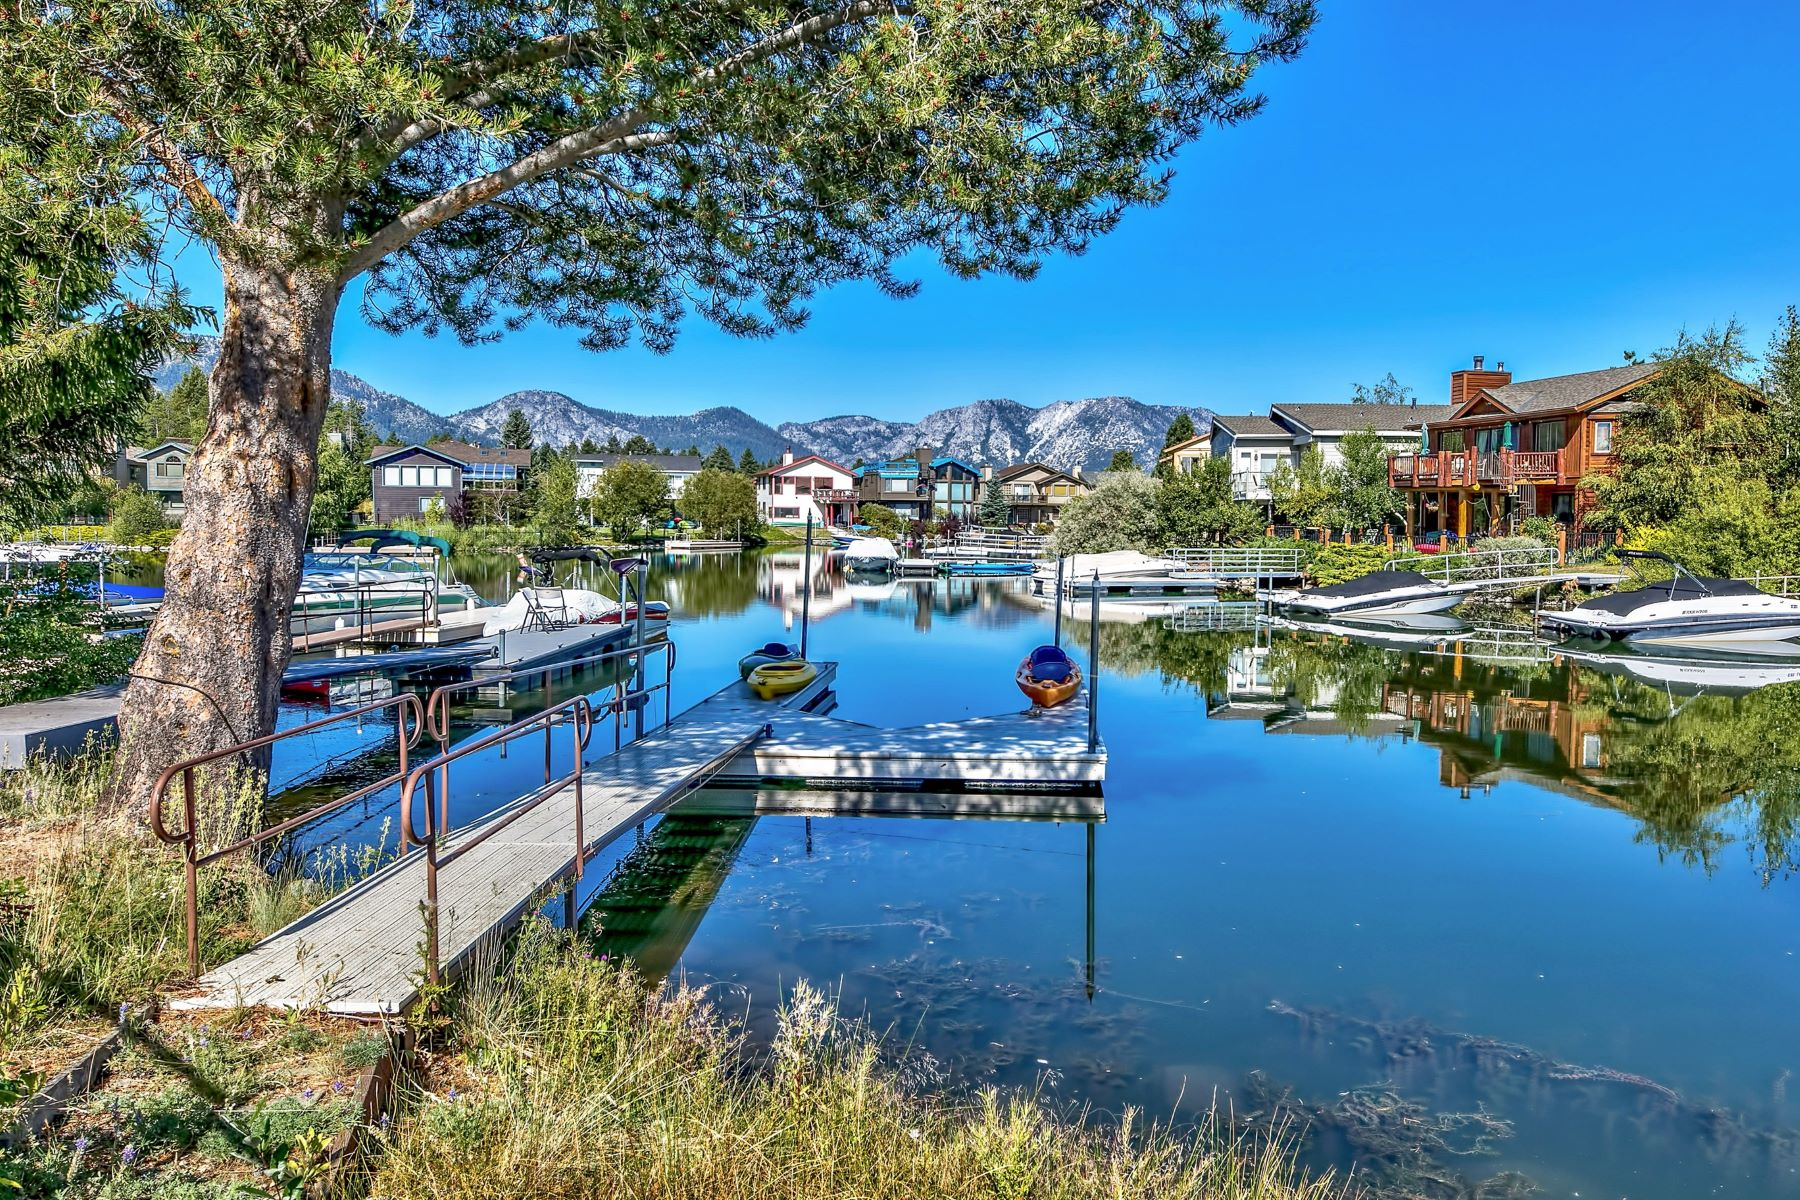 Additional photo for property listing at 600 Alpine Dr., South Lake Tahoe, Ca 96150 600 Alpine Drive South Lake Tahoe, California 96150 Estados Unidos